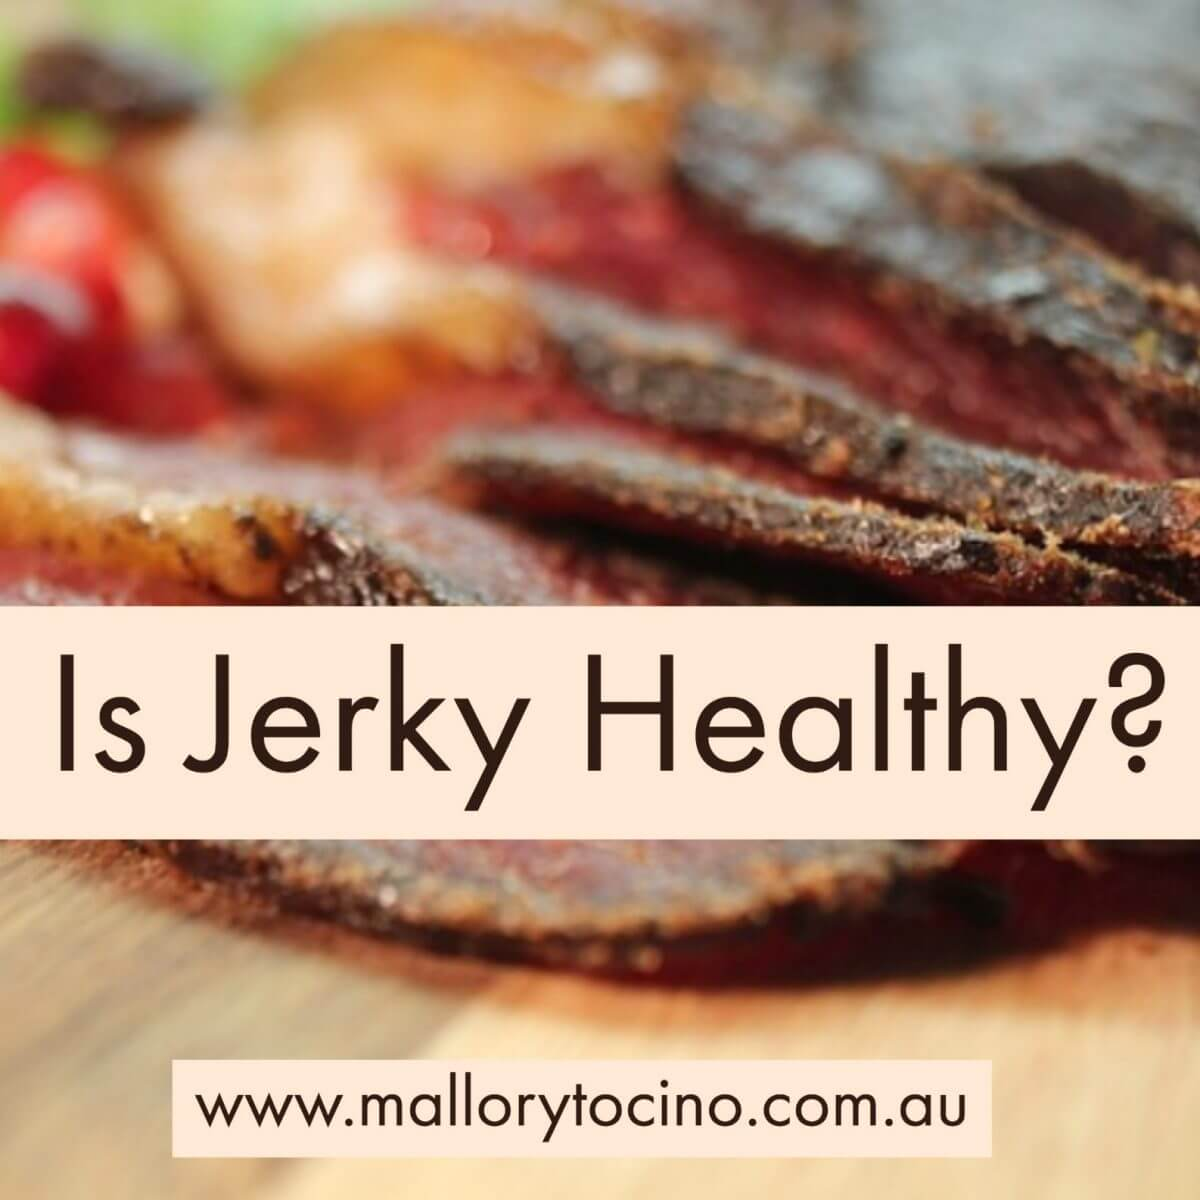 Mallory Tocino jerky answers is jerky healthy. www.mallorytocino.com